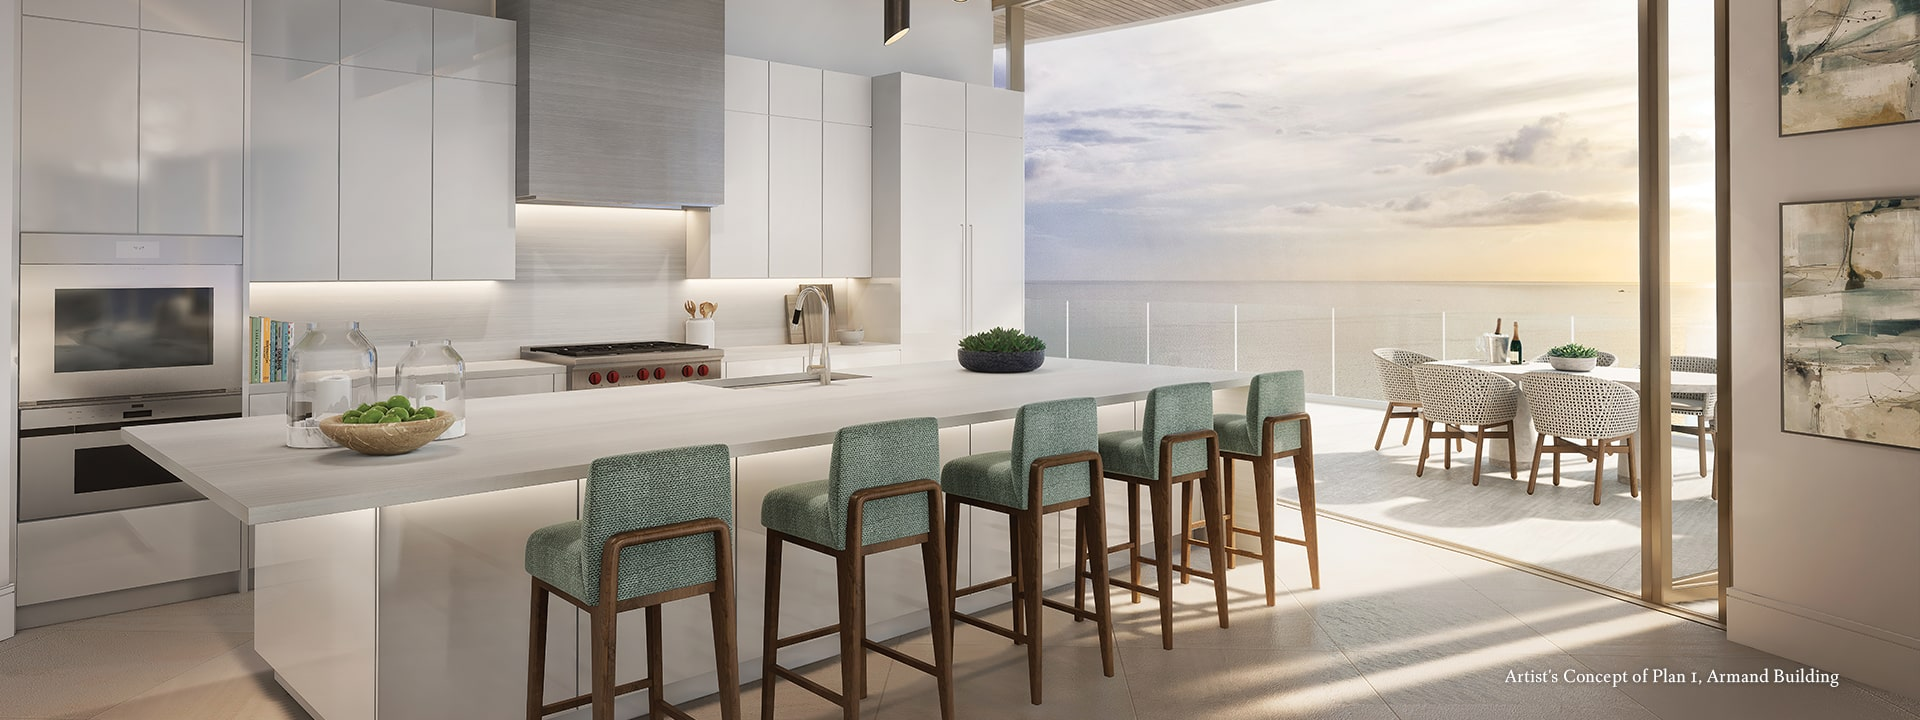 Armand Plan 1 Kitchen Rendering at The St Regis Longboat Key Resort